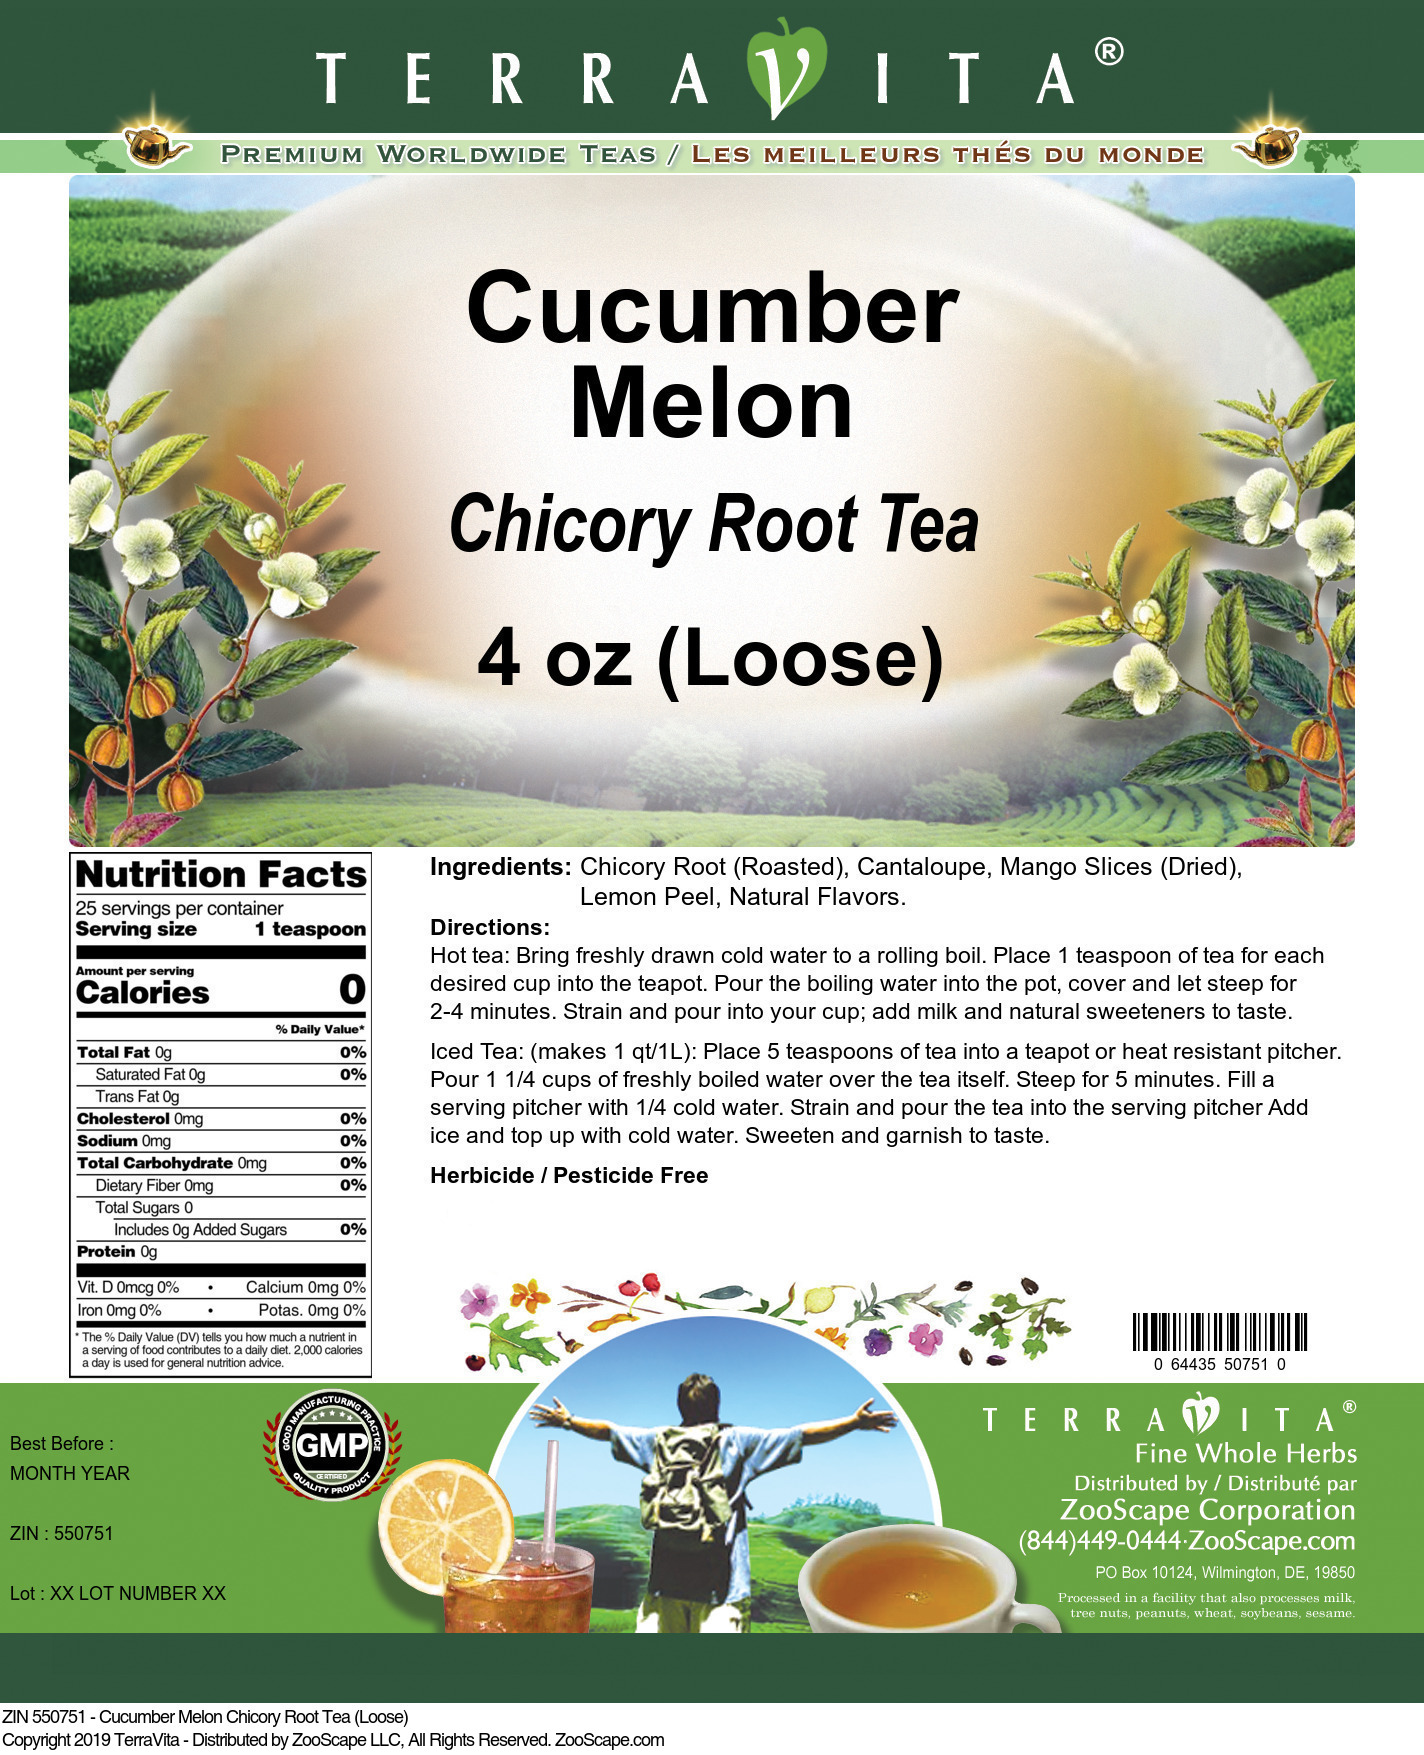 Cucumber Melon Chicory Root Tea (Loose)